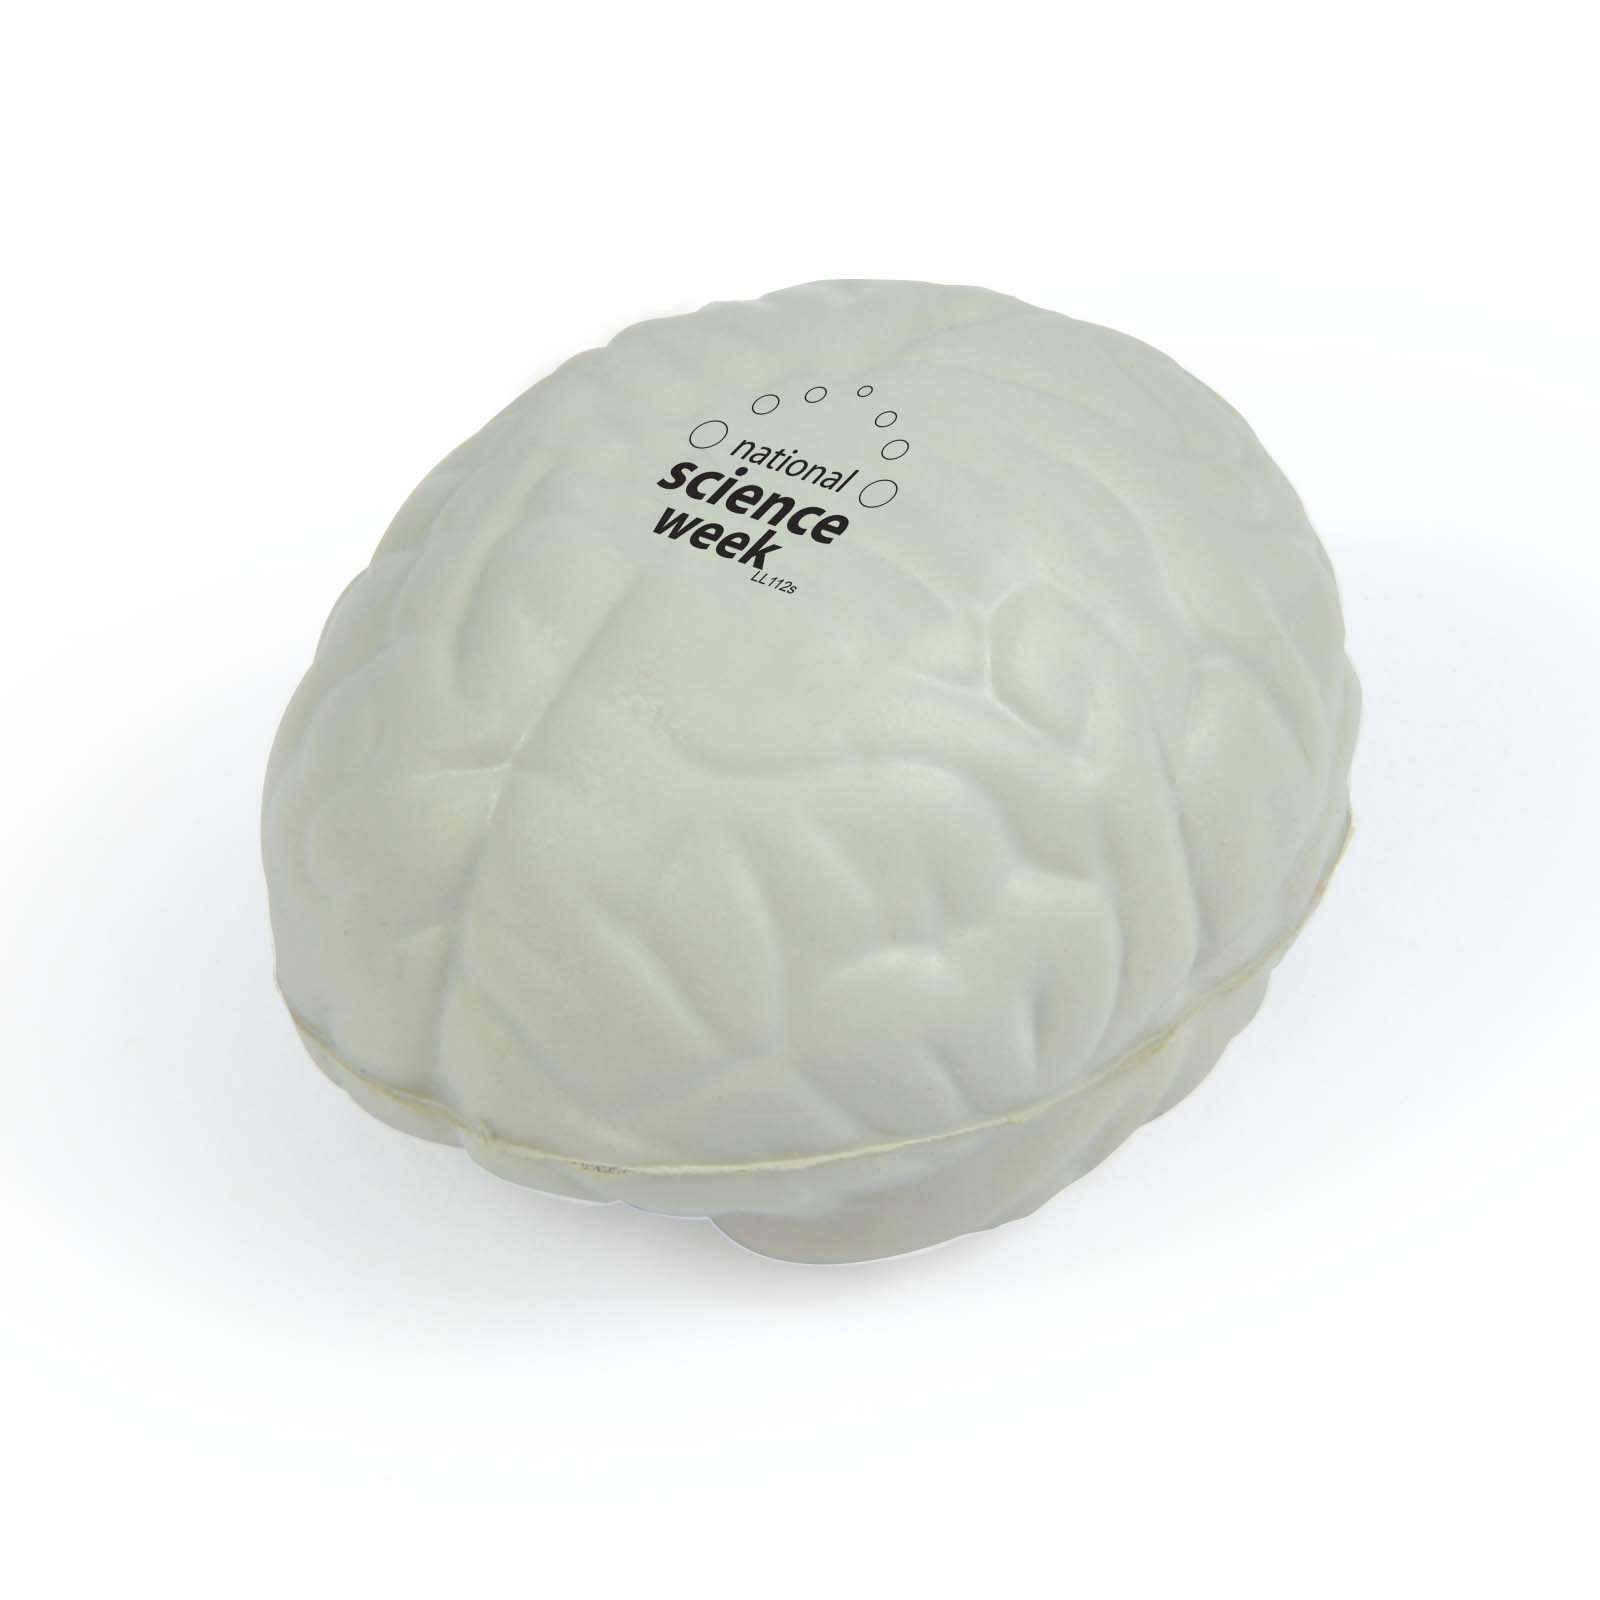 Brain Stress Reliever - Includes a 1 colour printed logo